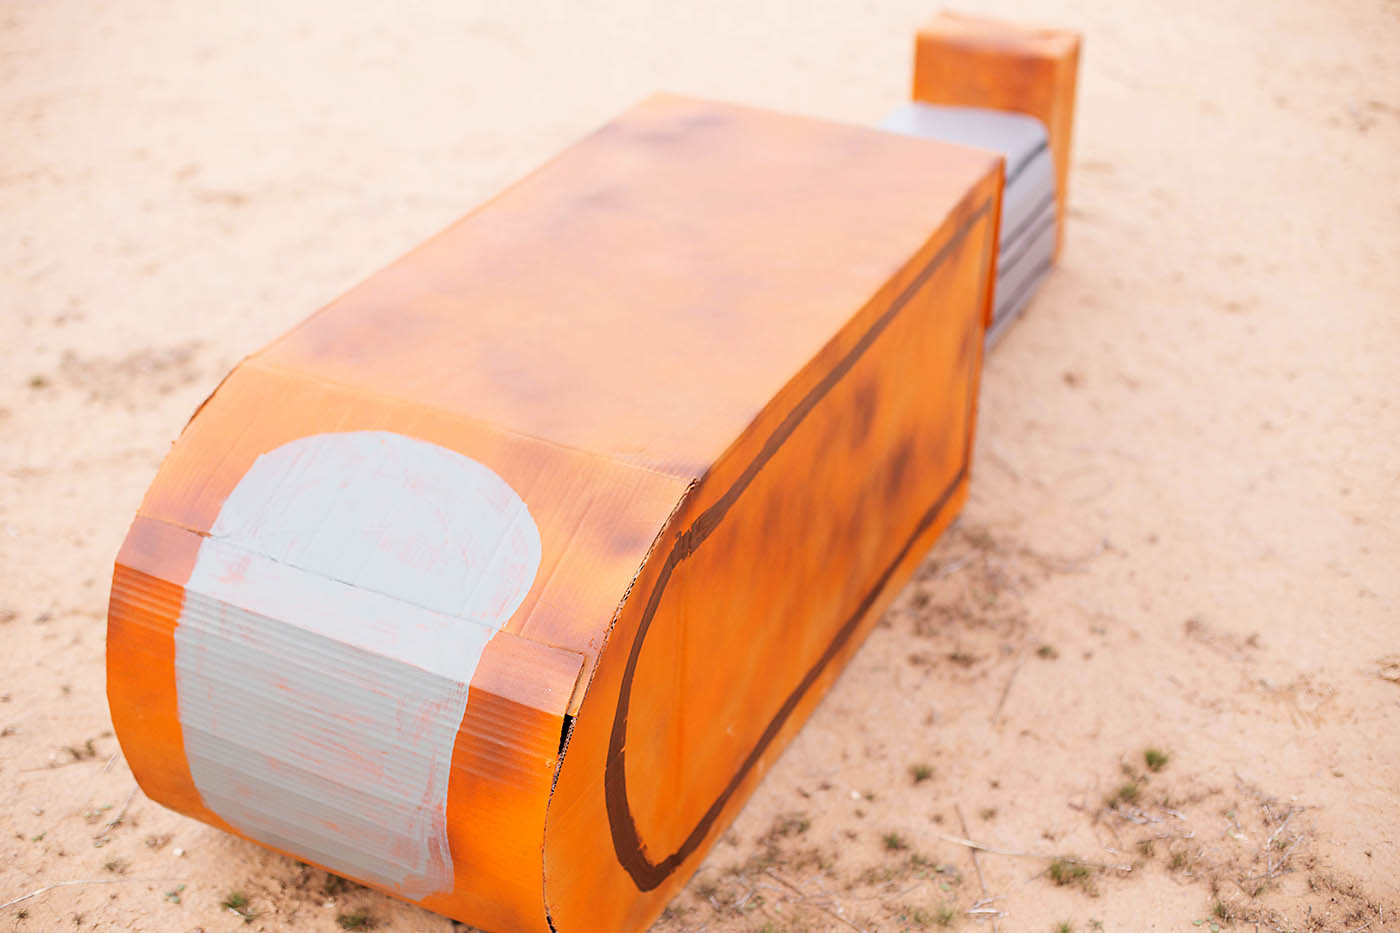 DIY cardboard Star Wars Rey's Speeder